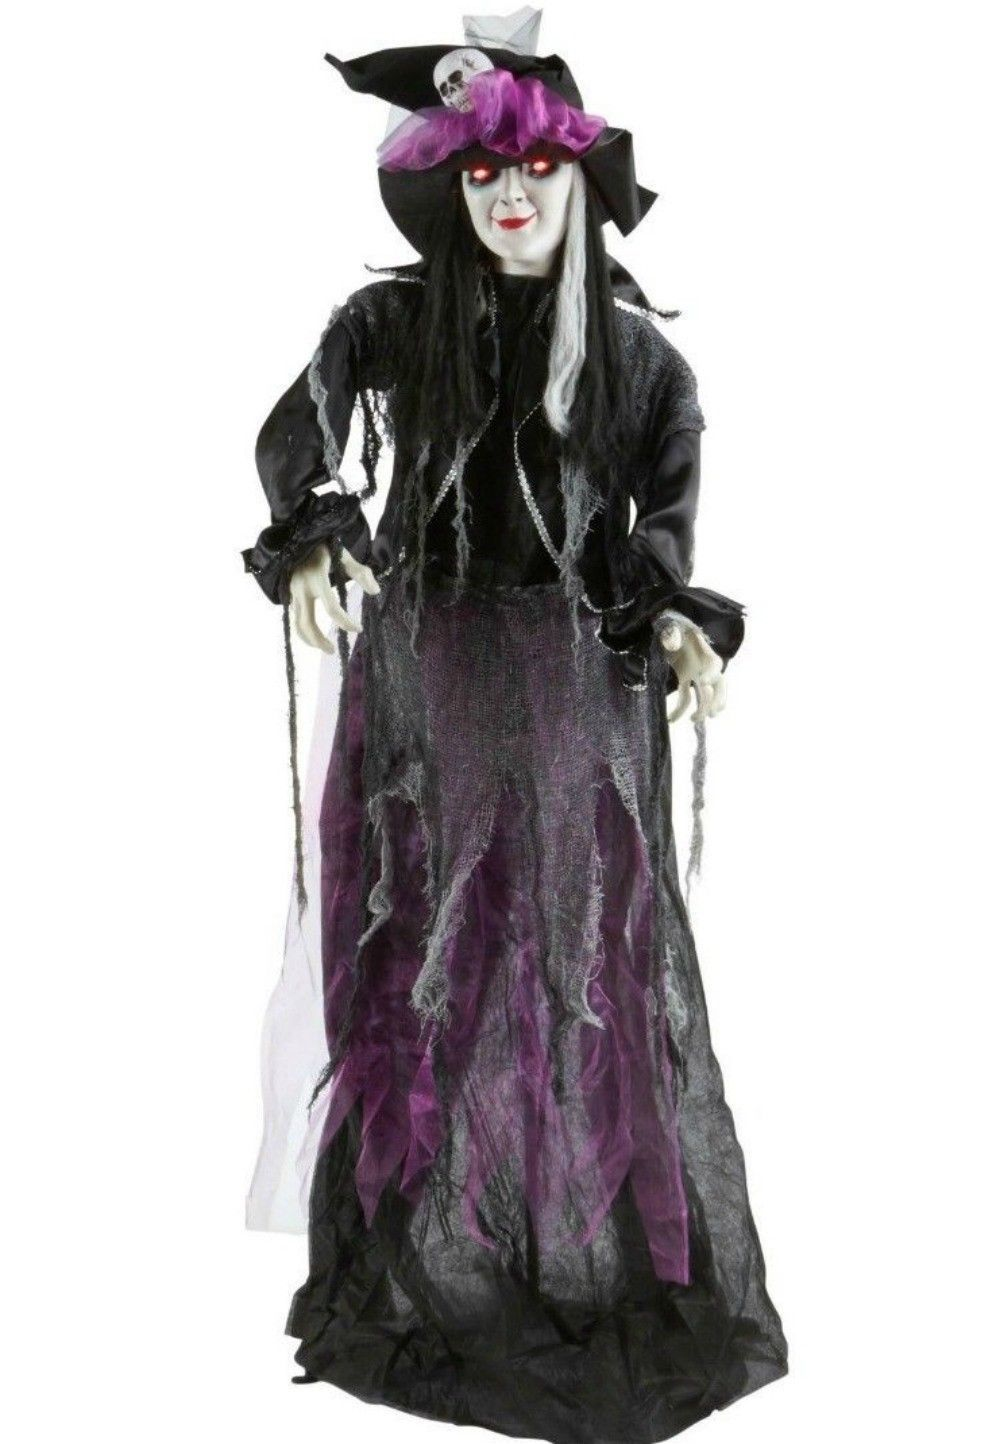 5' esmerelda halloween animated witch prop light up eyes and sounds